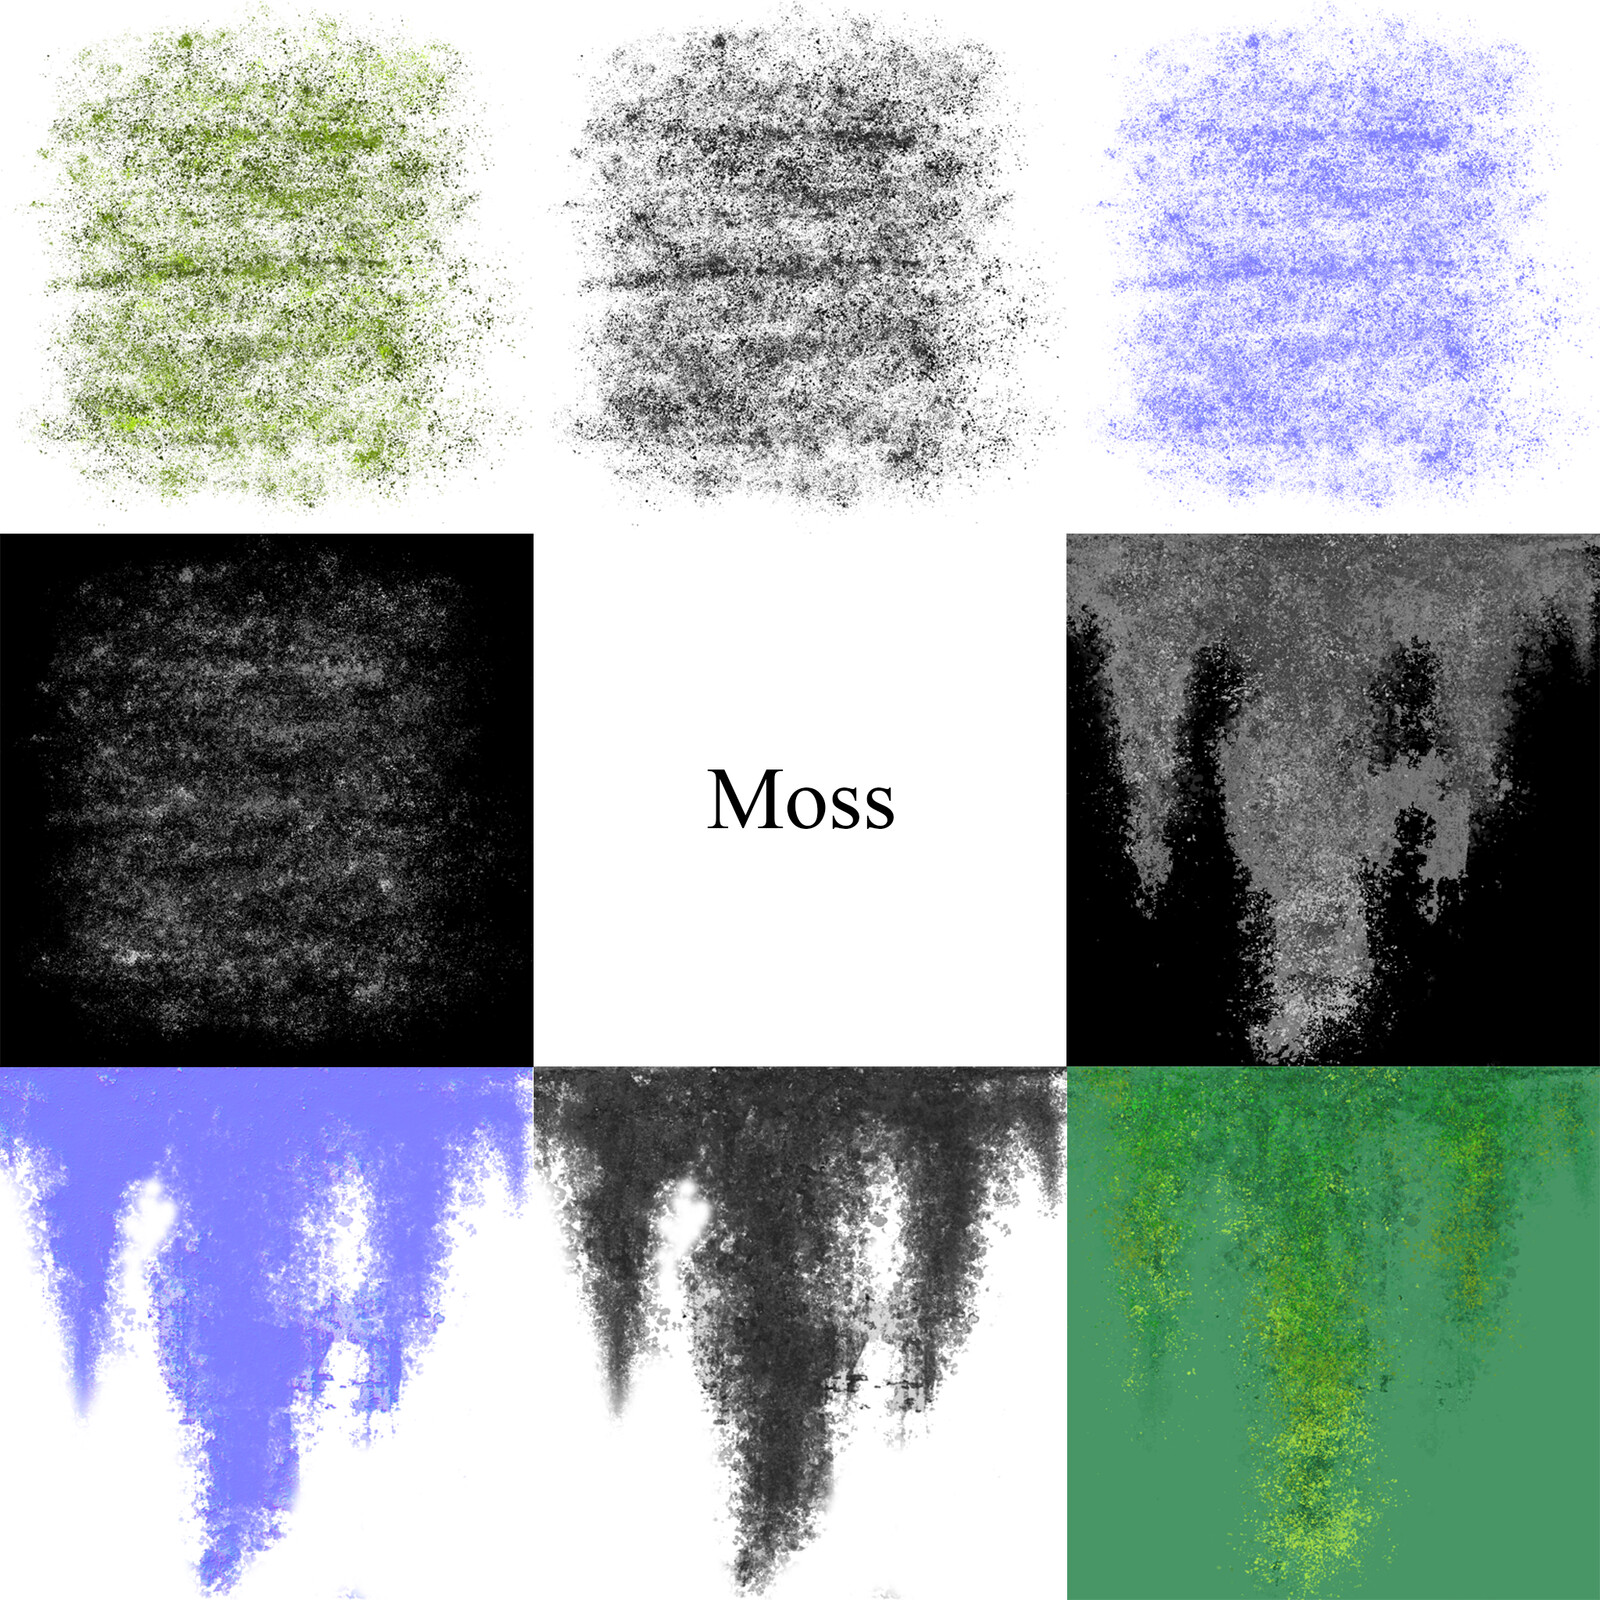 Albedo, Roughness, Normal, and Opacity maps for both the decal and hanging versions